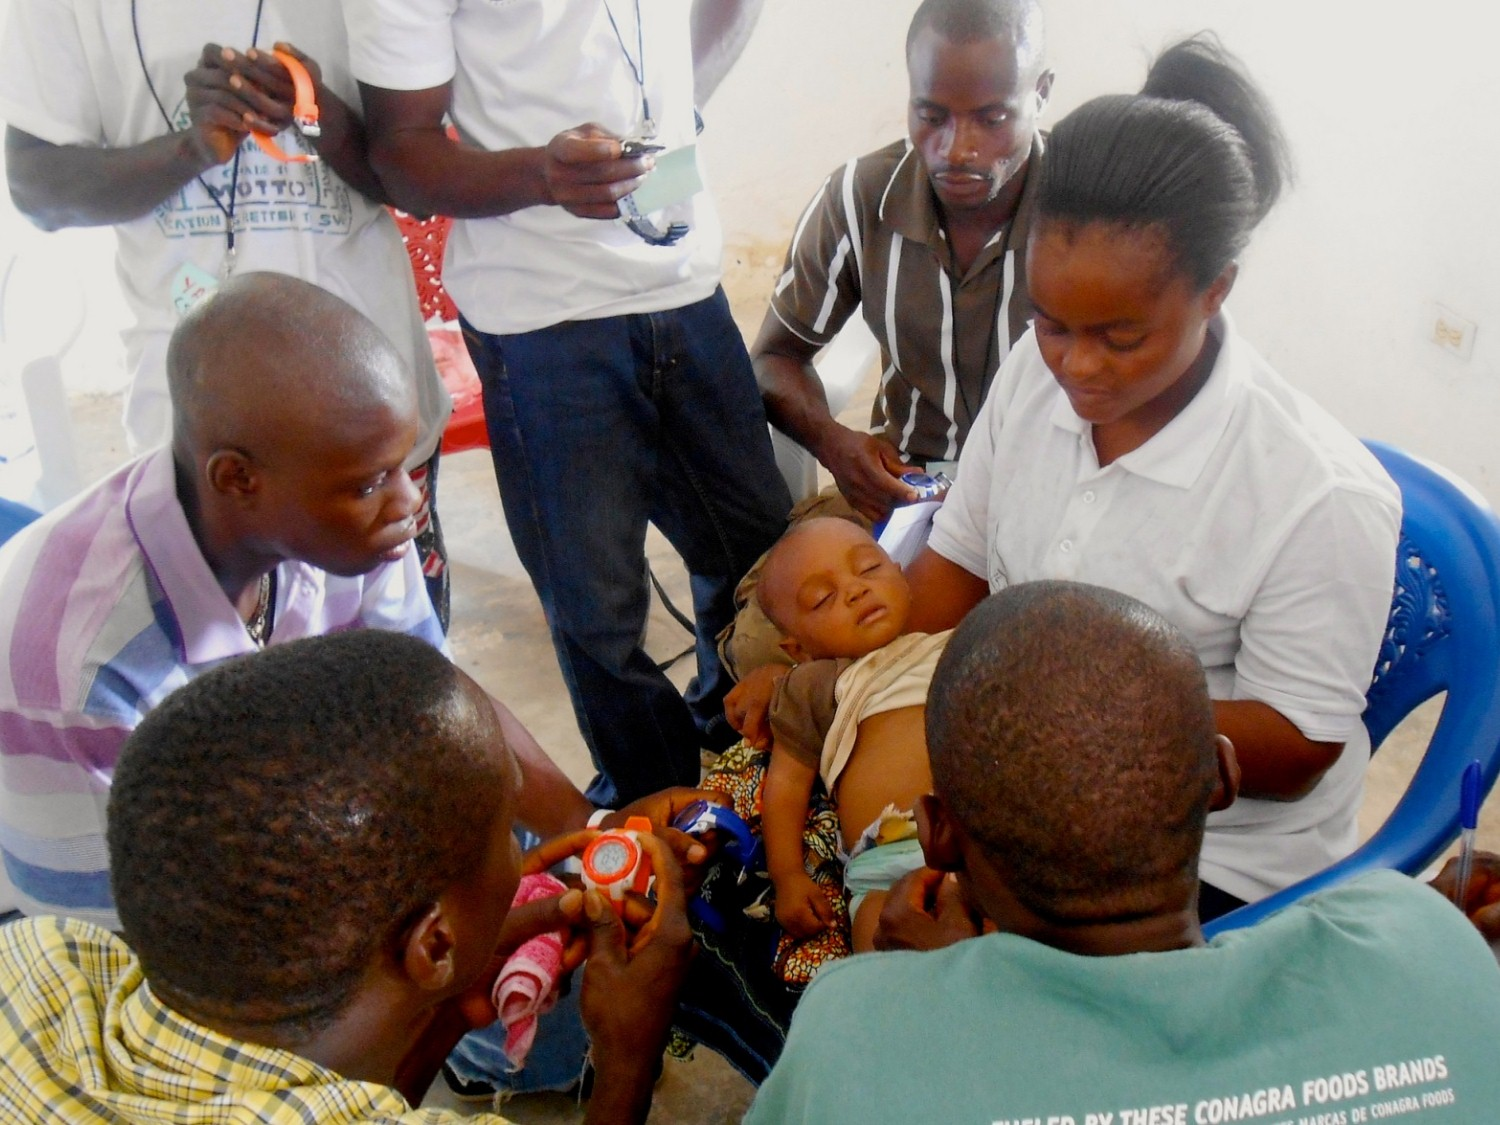 Medical workers assess a child's health during training. Photo courtesy of Last Mile Health.